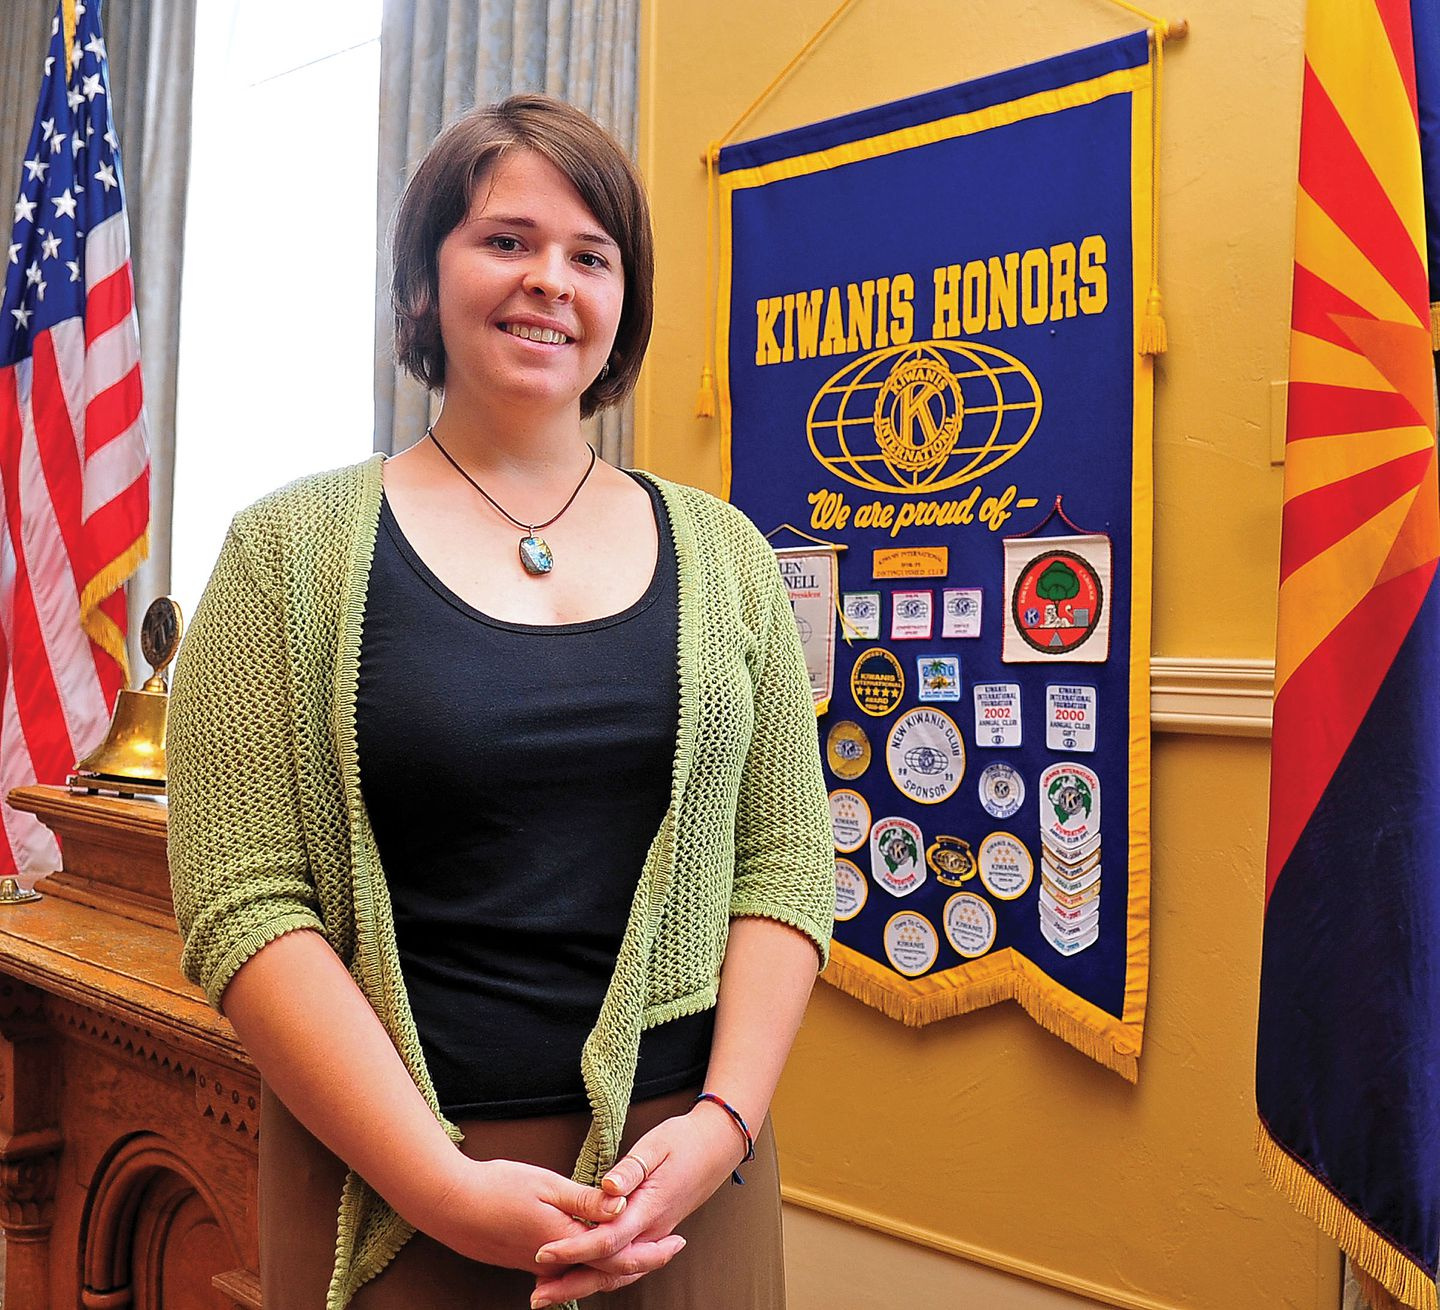 Kayla Mueller in Prescott, Ariz., on May 30, 2013. She was kidnapped by the Islamic State in 2013 and killed in 2015.